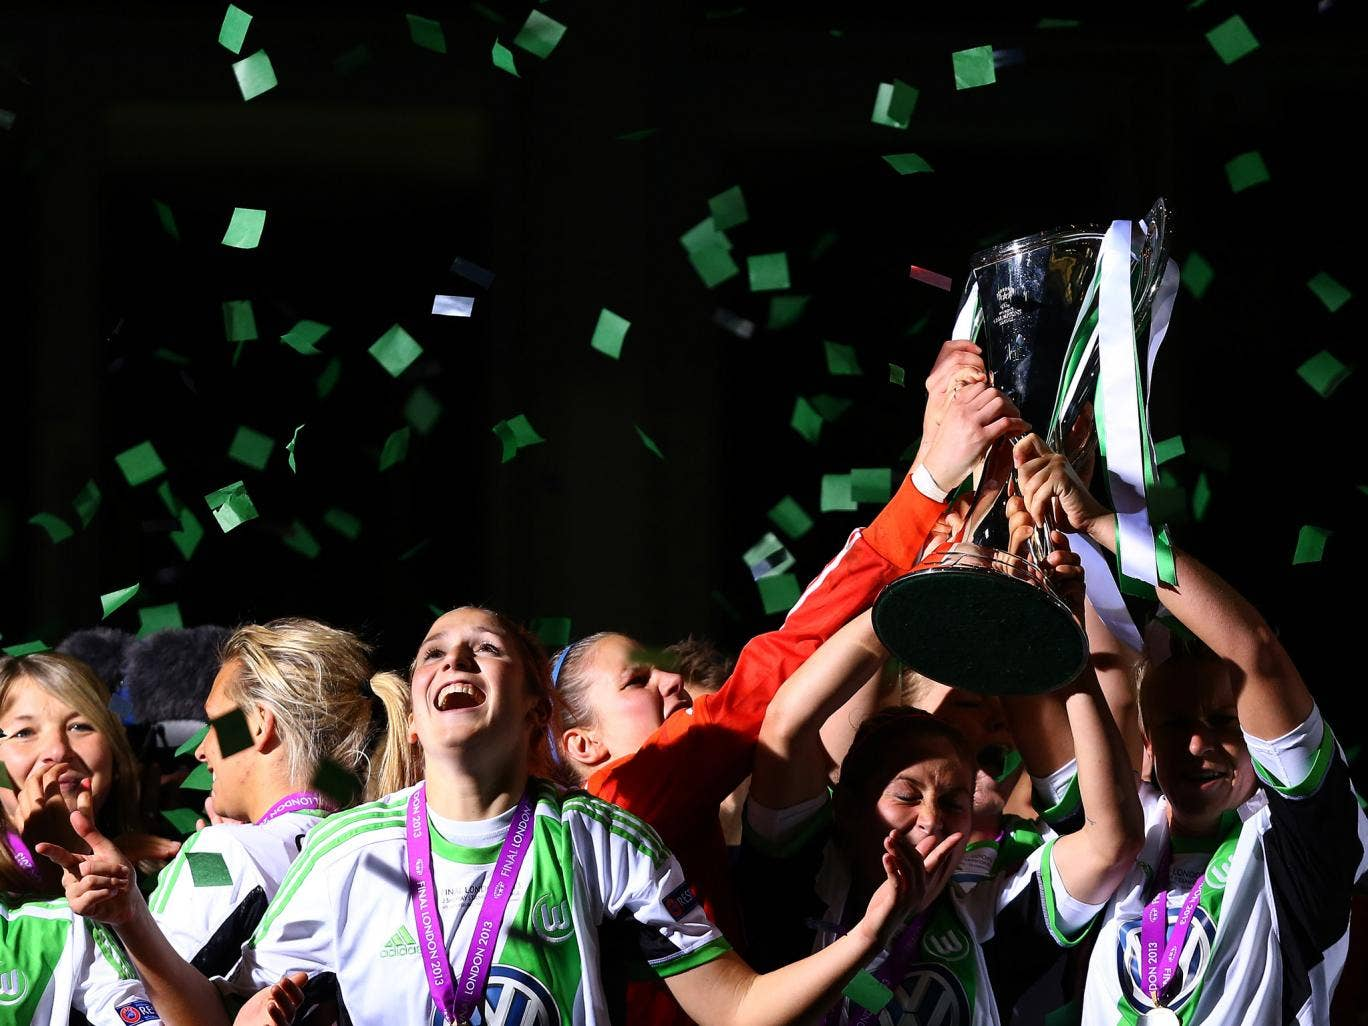 Wolfsburg players celebrate with the trophy after winning the UEFA Women's Champions League final match between VfL Wolfsburg and Olympique Lyonnais